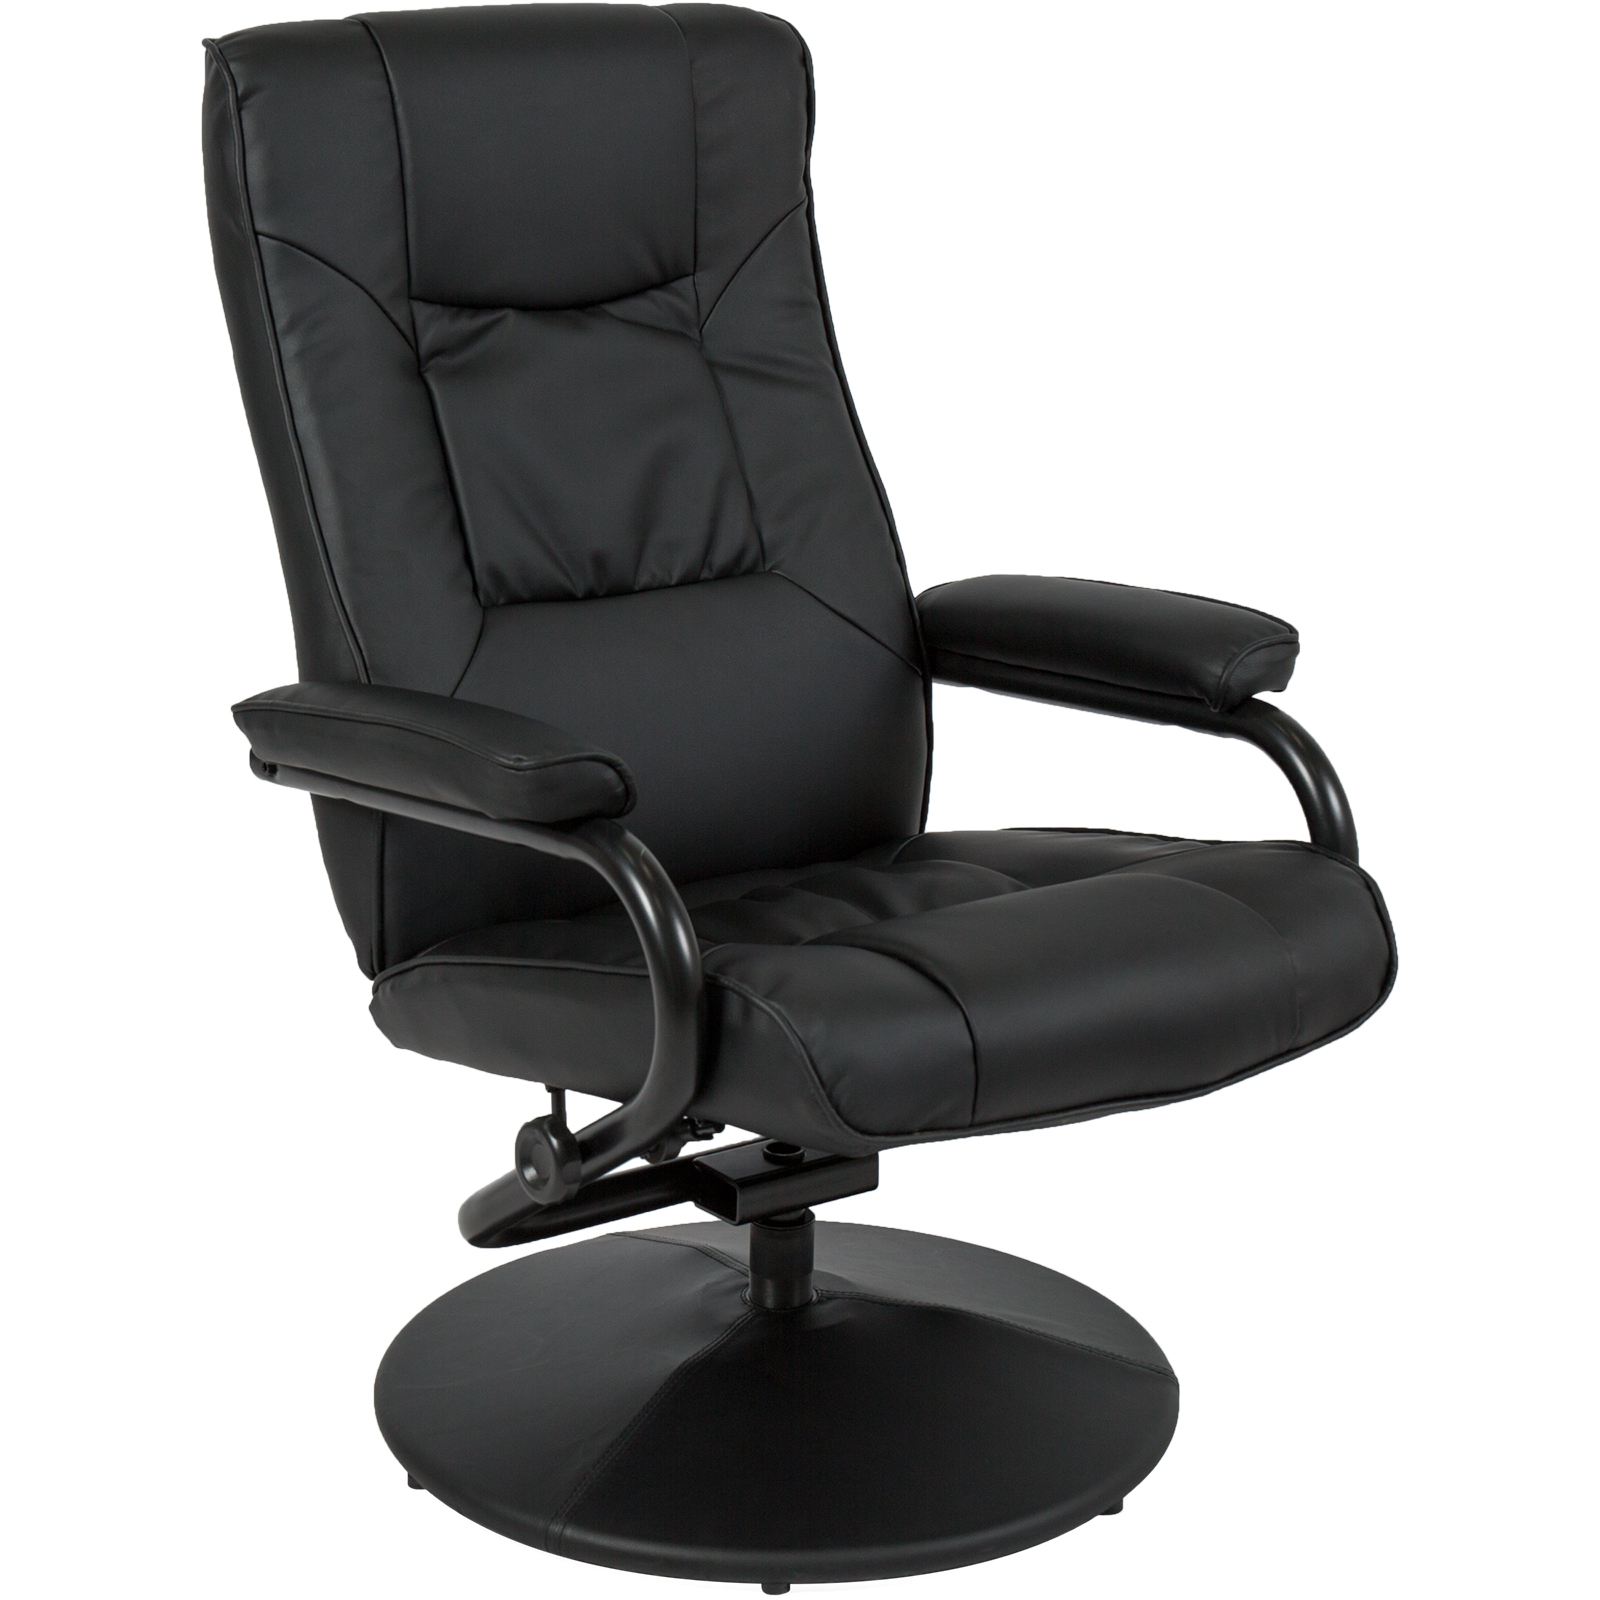 leather swivel recliner chair and ottoman pastel table chairs best choice products for home office w padded armrests stool black walmart com